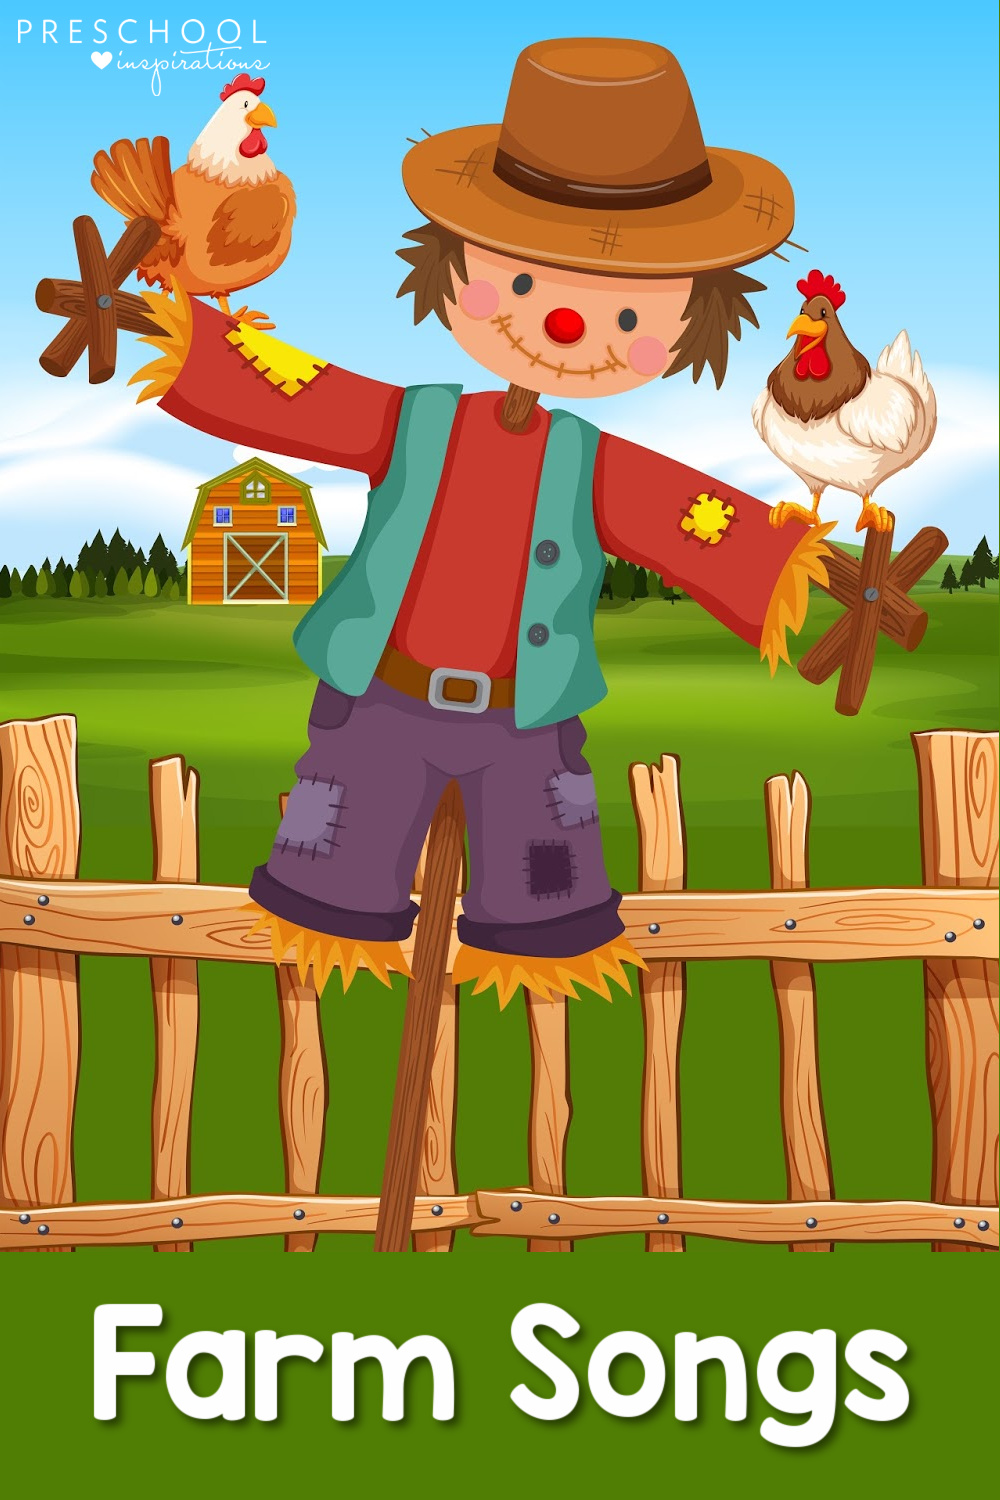 pinnable image of a scarecrow and chickens in front of a farm with the text farm songs